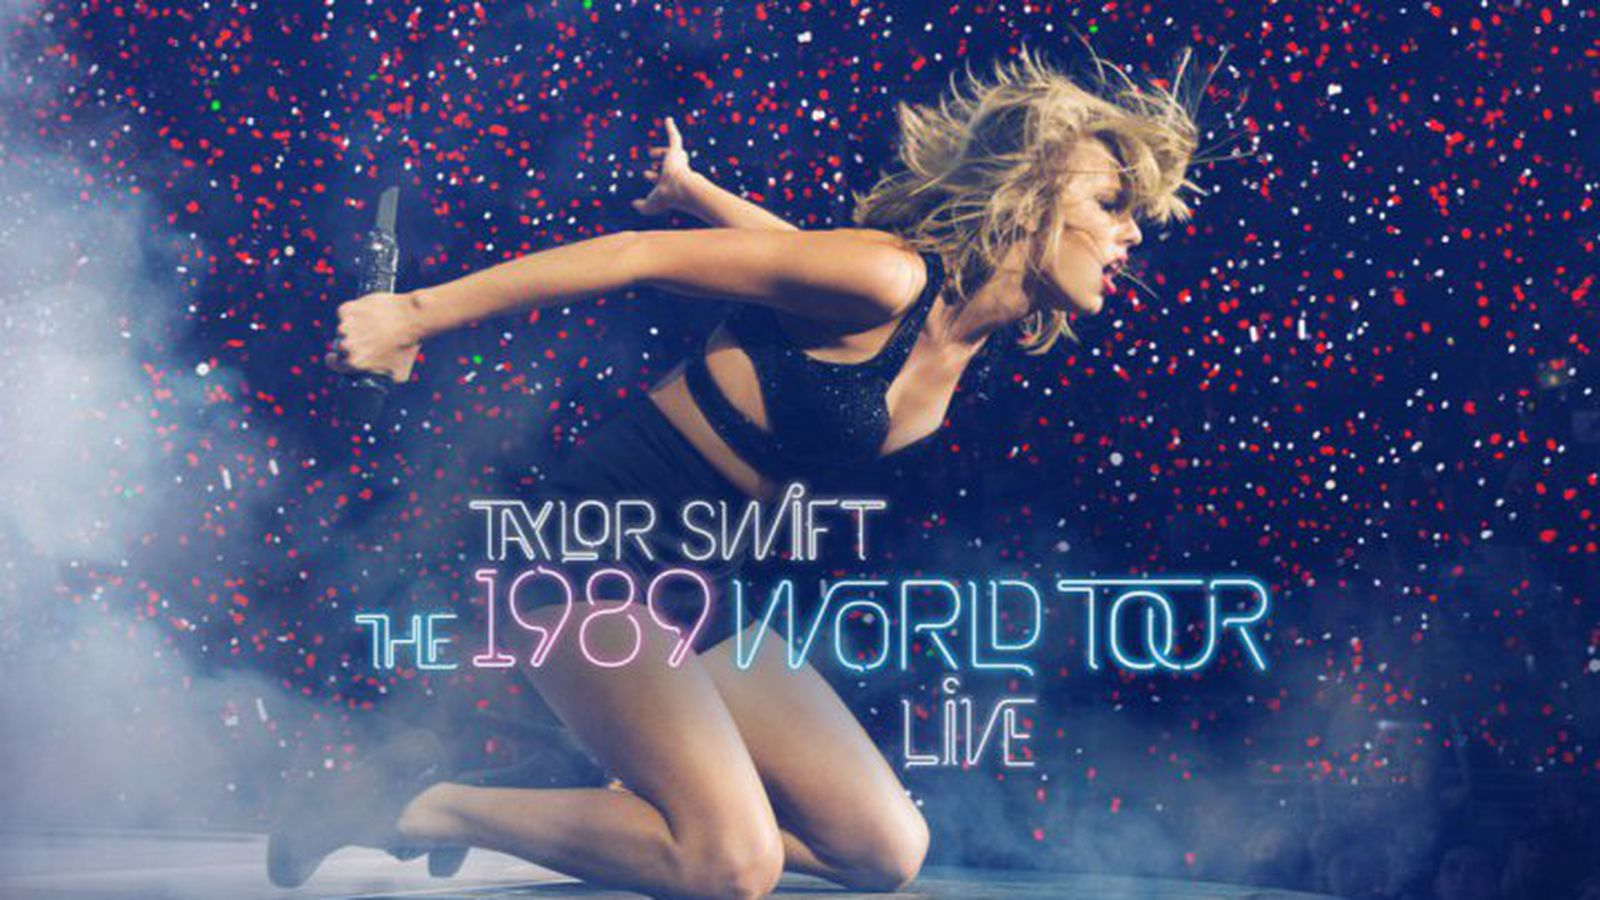 Taylor Swift S 1989 World Tour Documentary Is Now Streaming On Apple Music The Verge